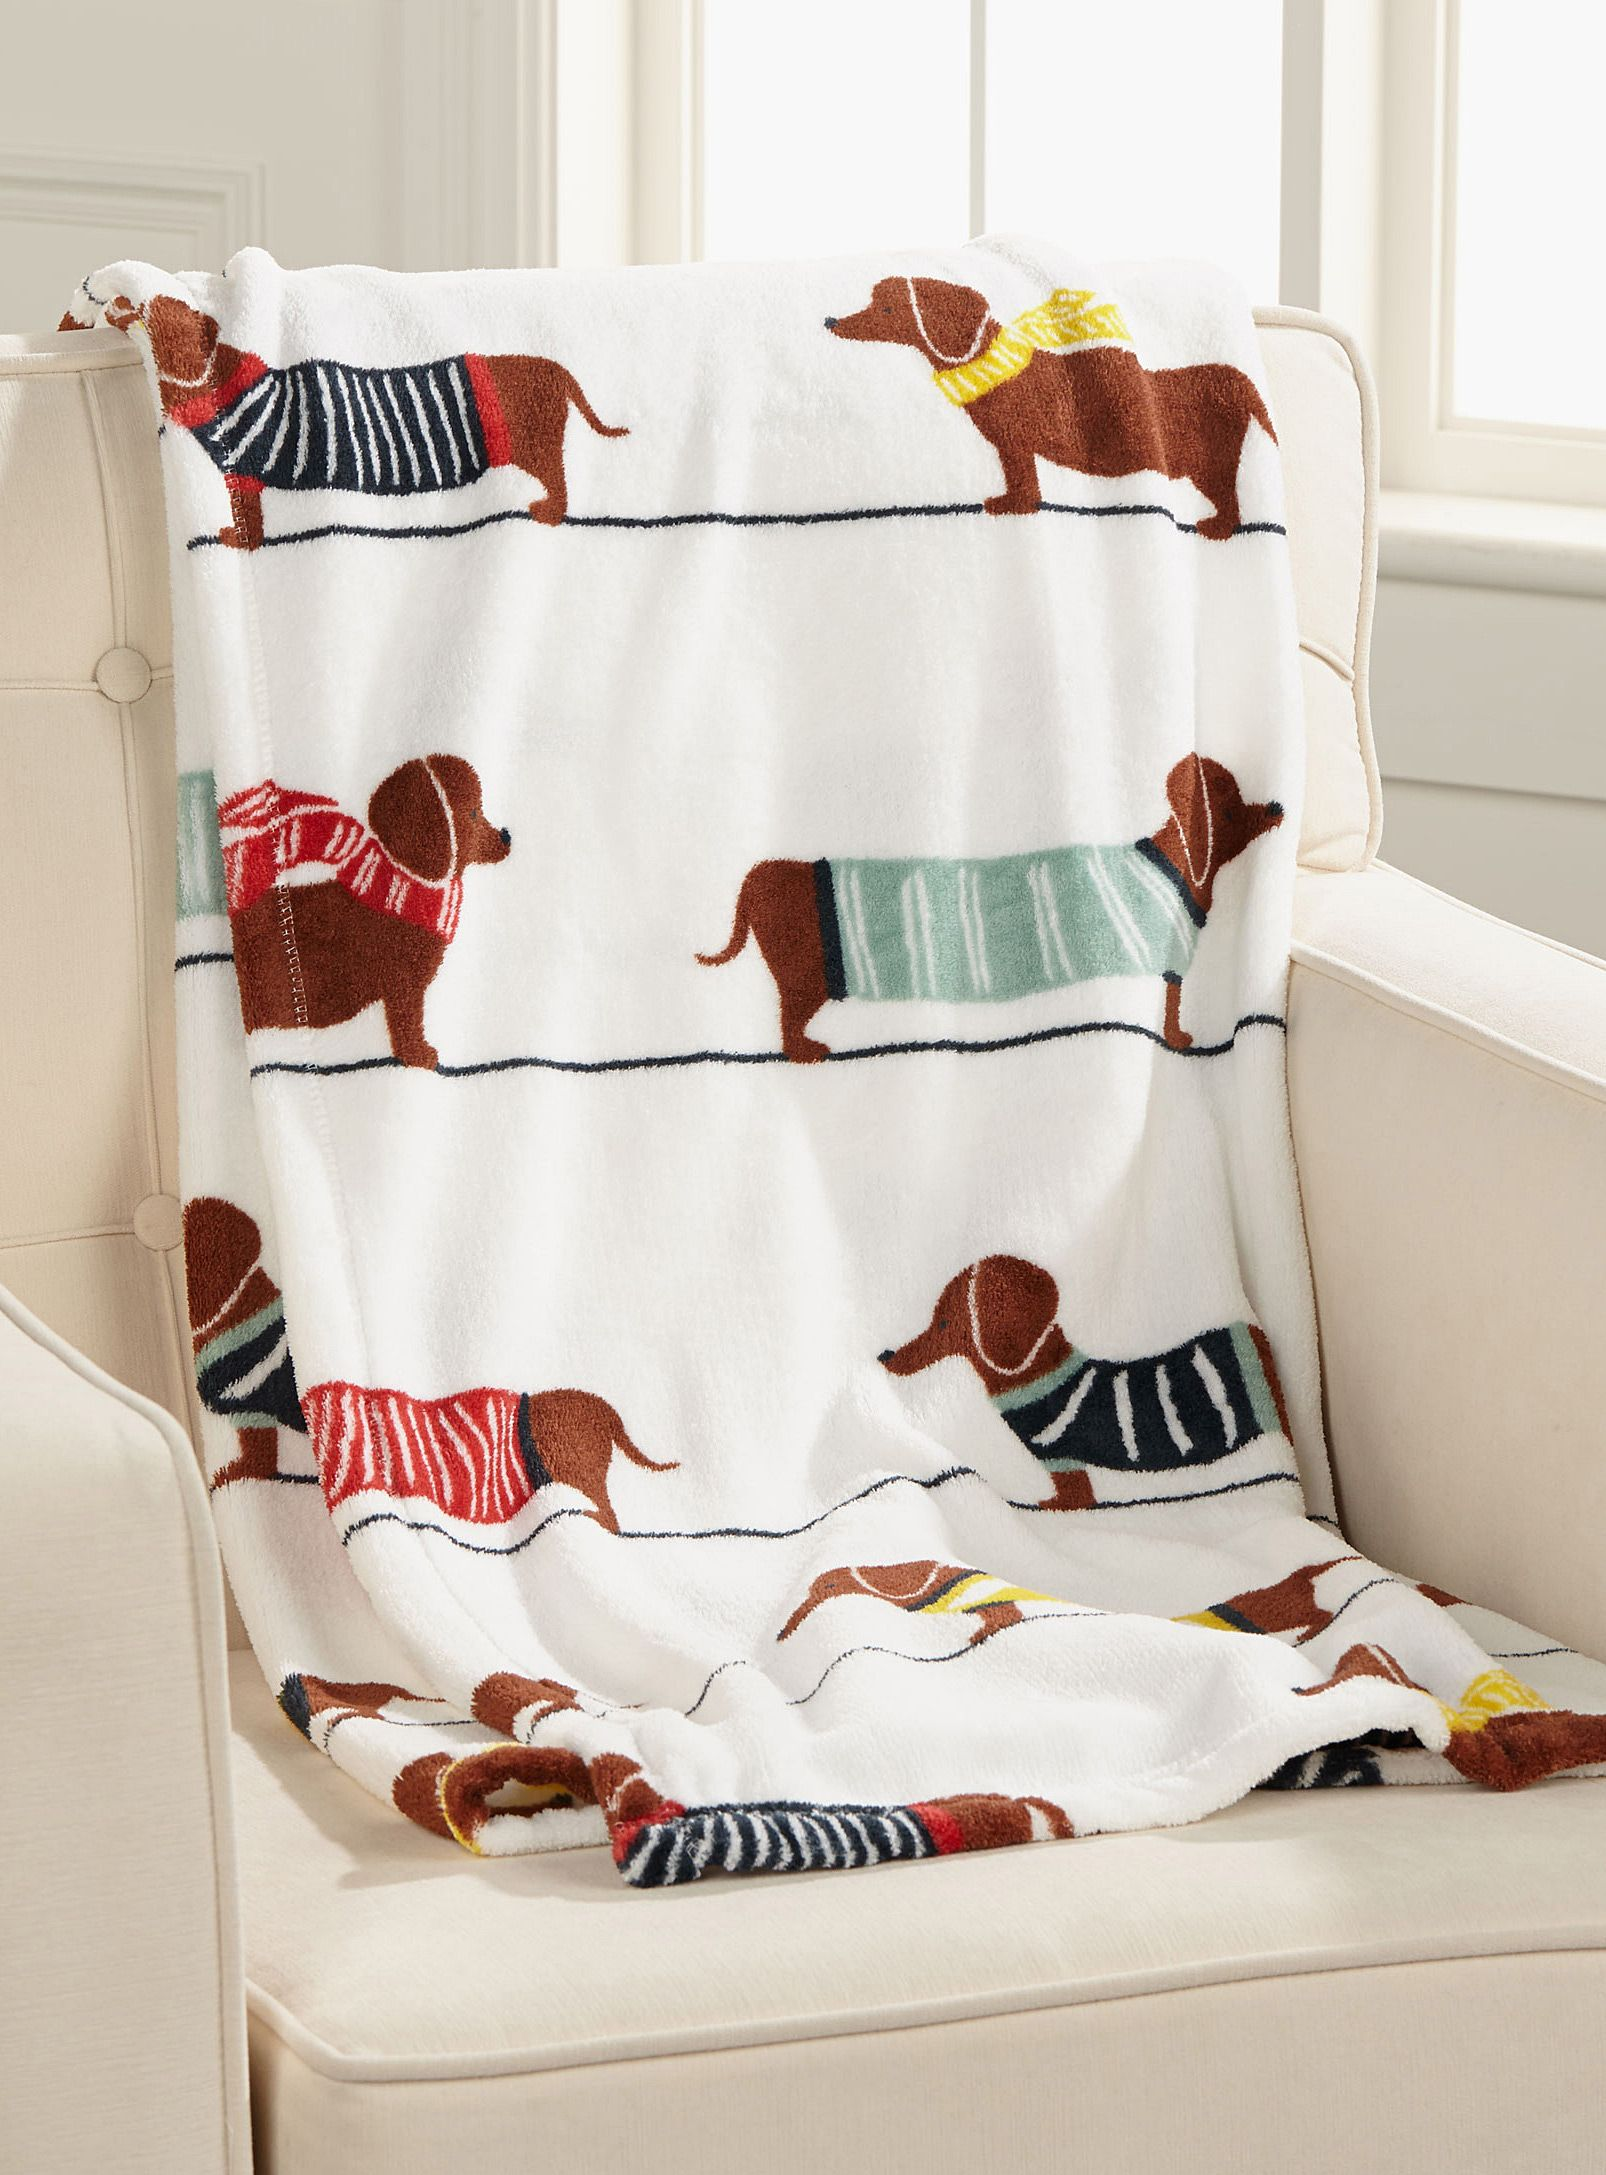 Dachshund Home Decor Shop Kids Bedroom Decor Accessories Online In Canada Simons